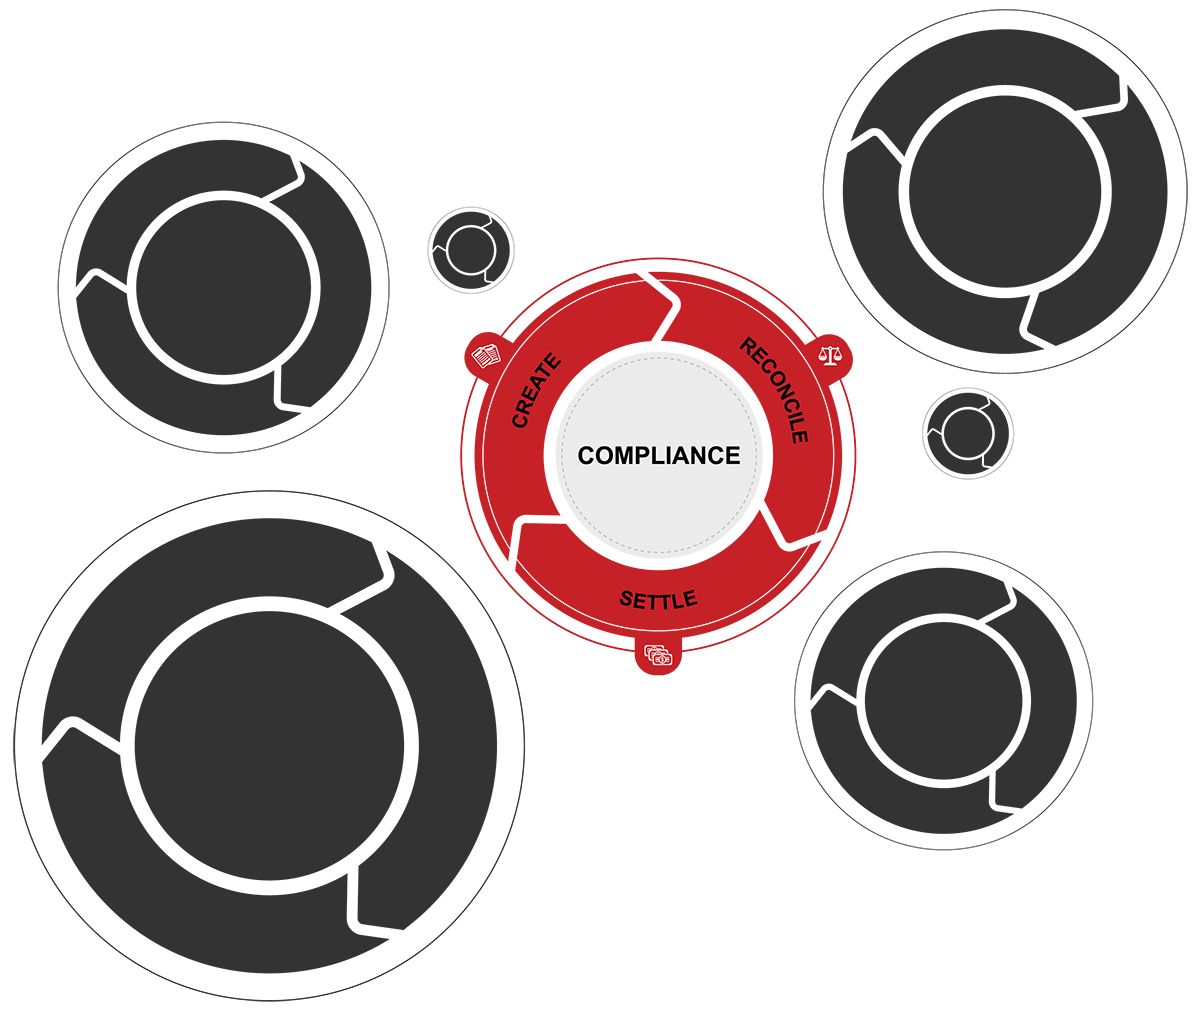 vt-compliance-group-icon@2x